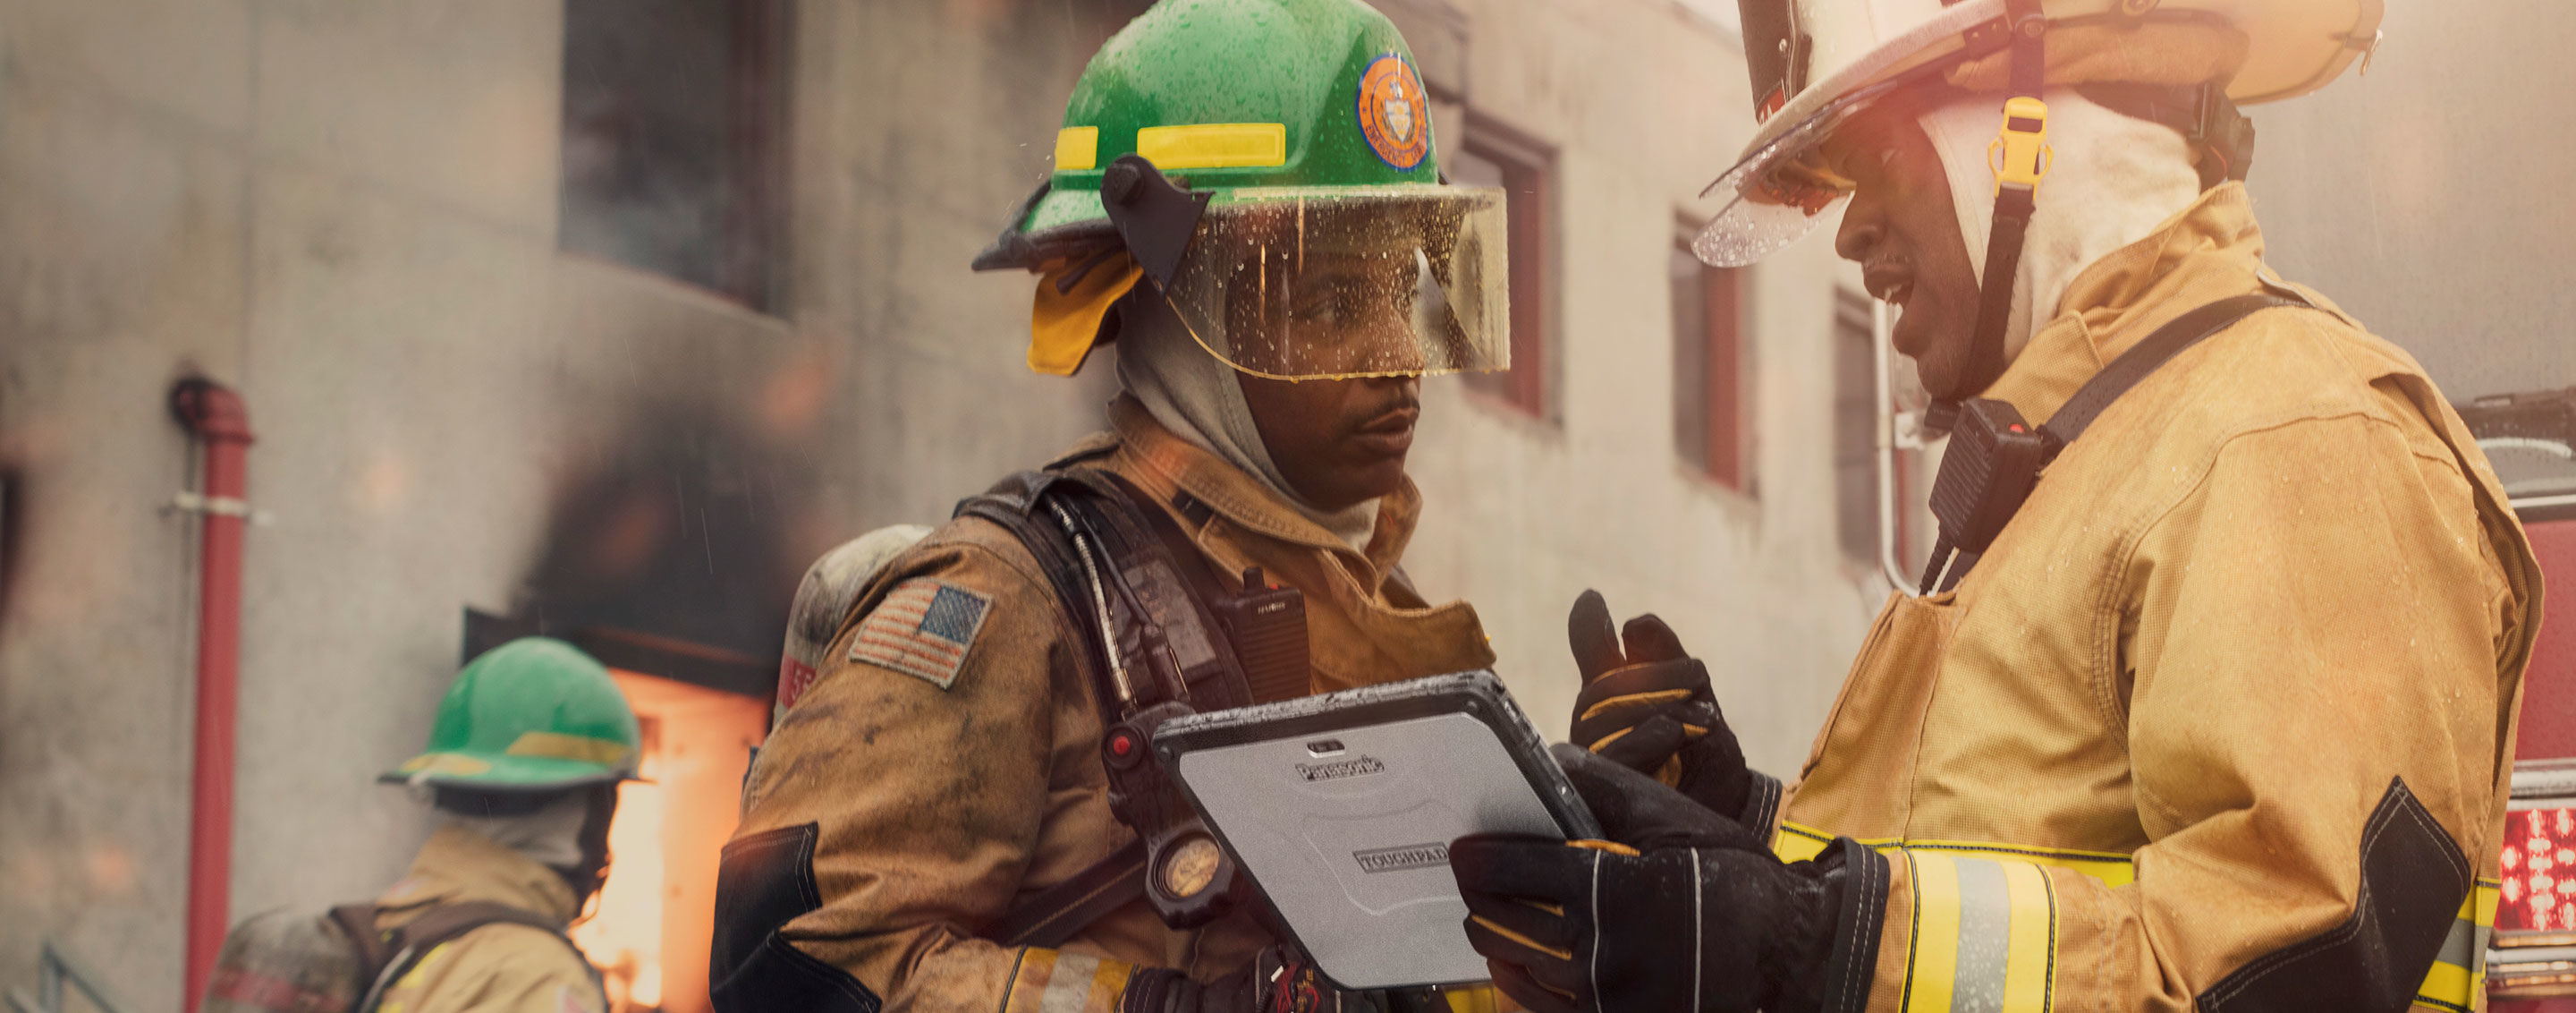 Toughbook for Firefighters